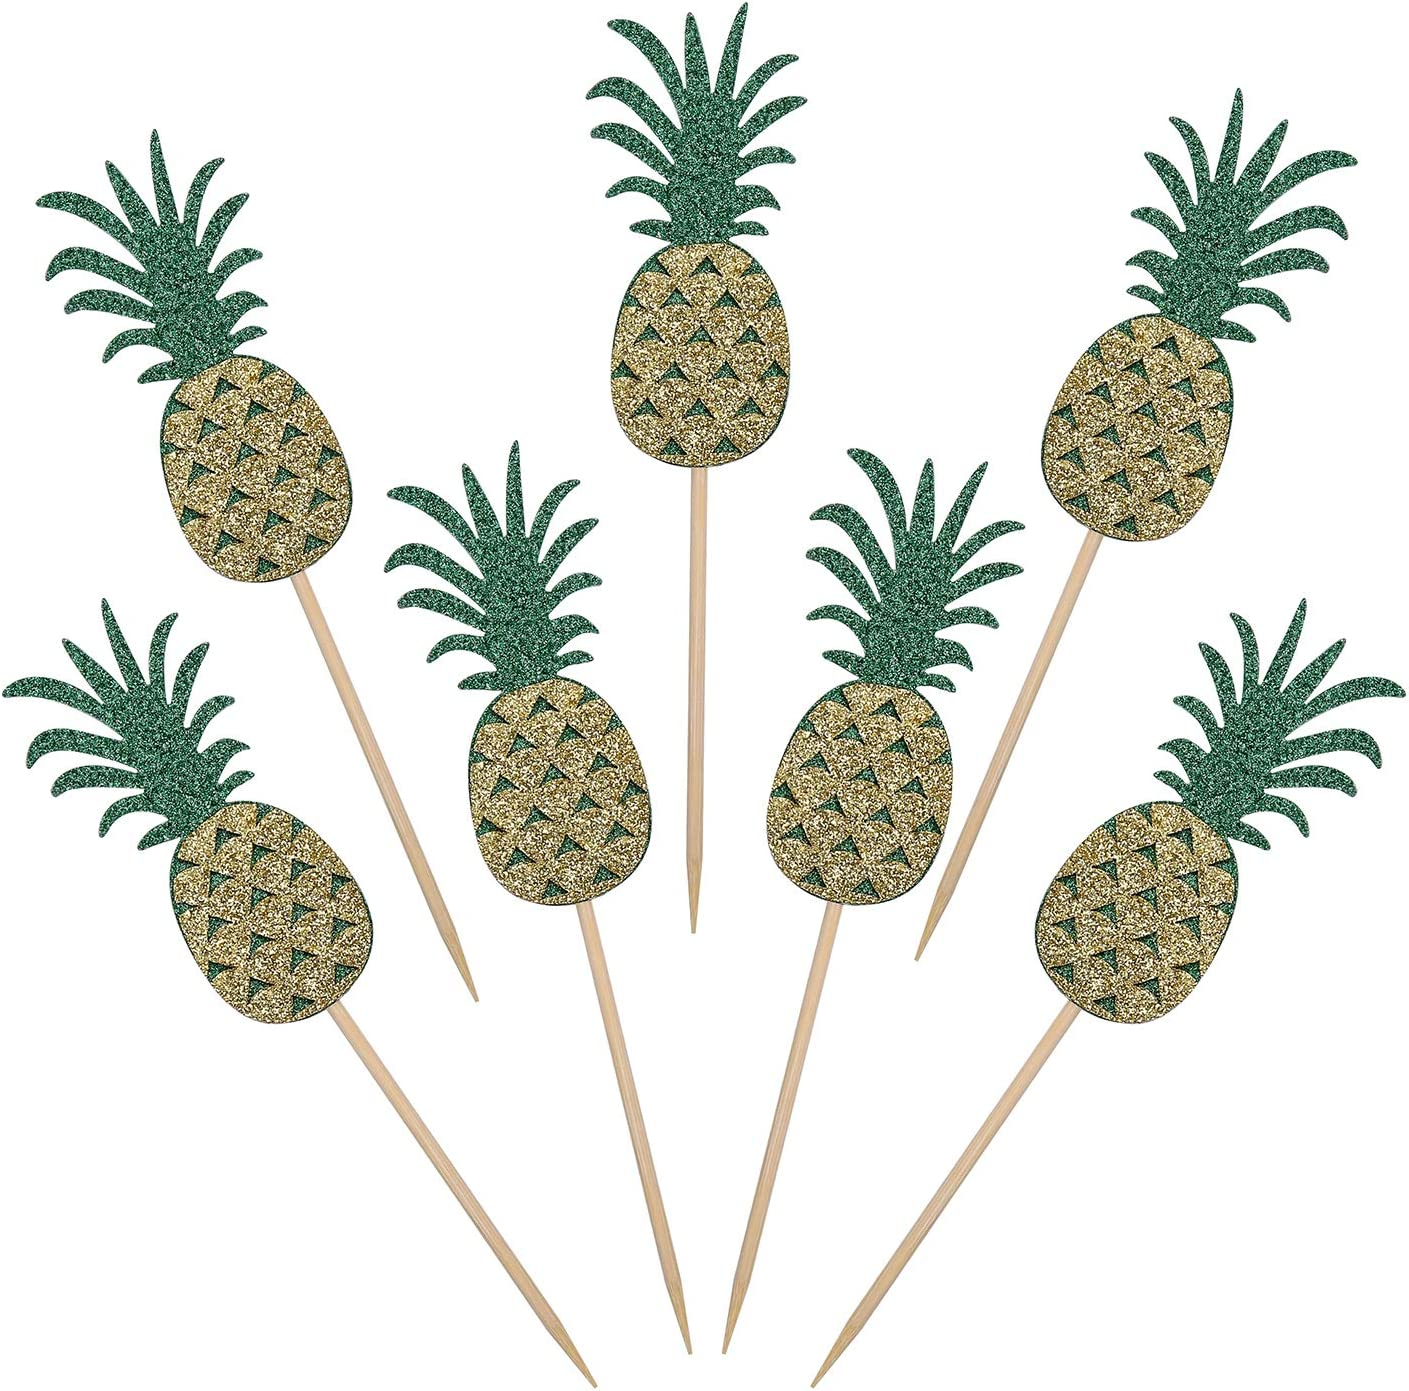 24 Pieces Glitter Pineapple Cupcake Topper Cake Picks Decoration for Hawaiian Tropical Luau Beach Summer Theme Party Decorations and Food Picks